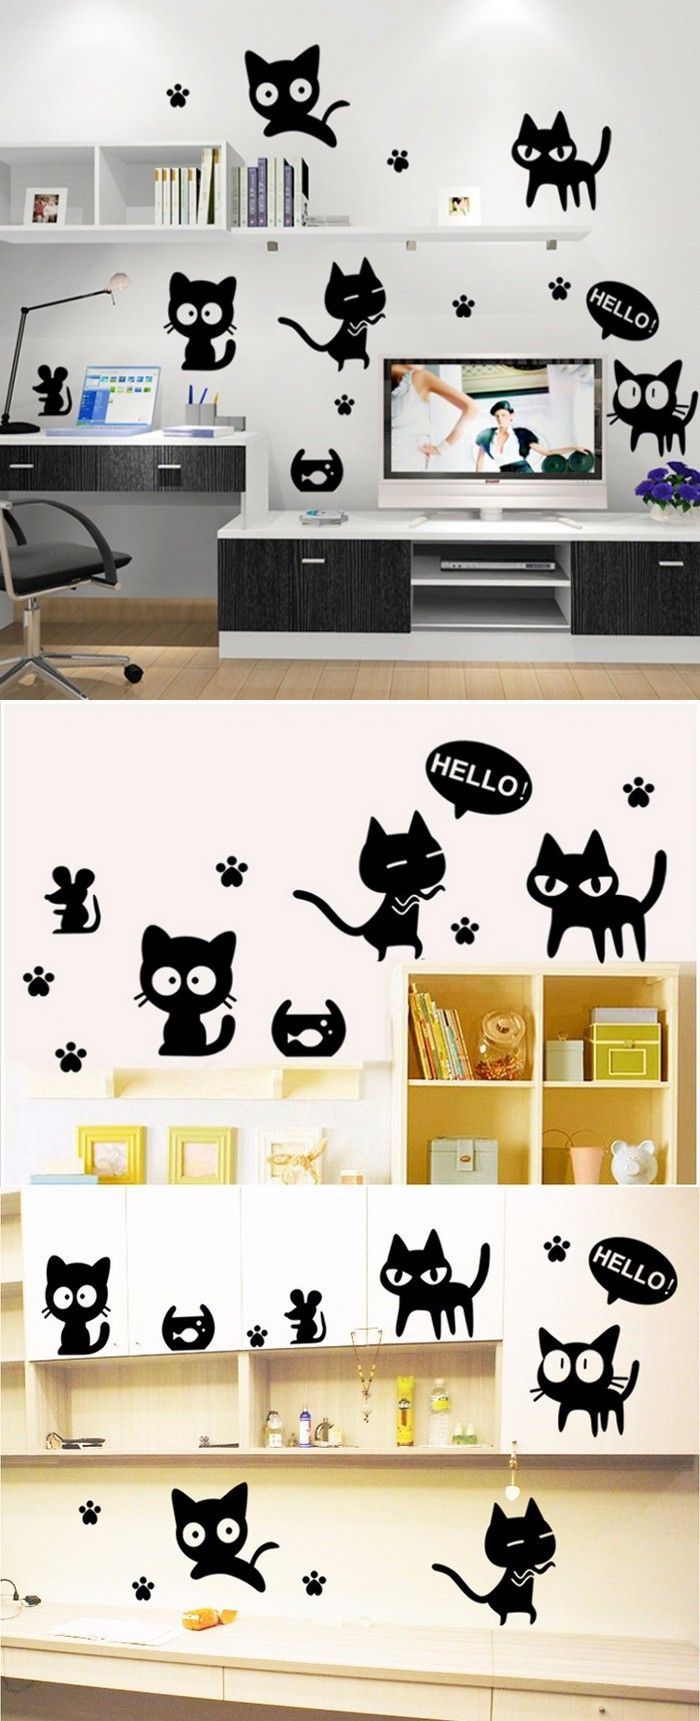 Removable Catoon black cute funny cat face monochrome creative Vinyl wall stickers home decoration Cat Facial Expression decals $5.6